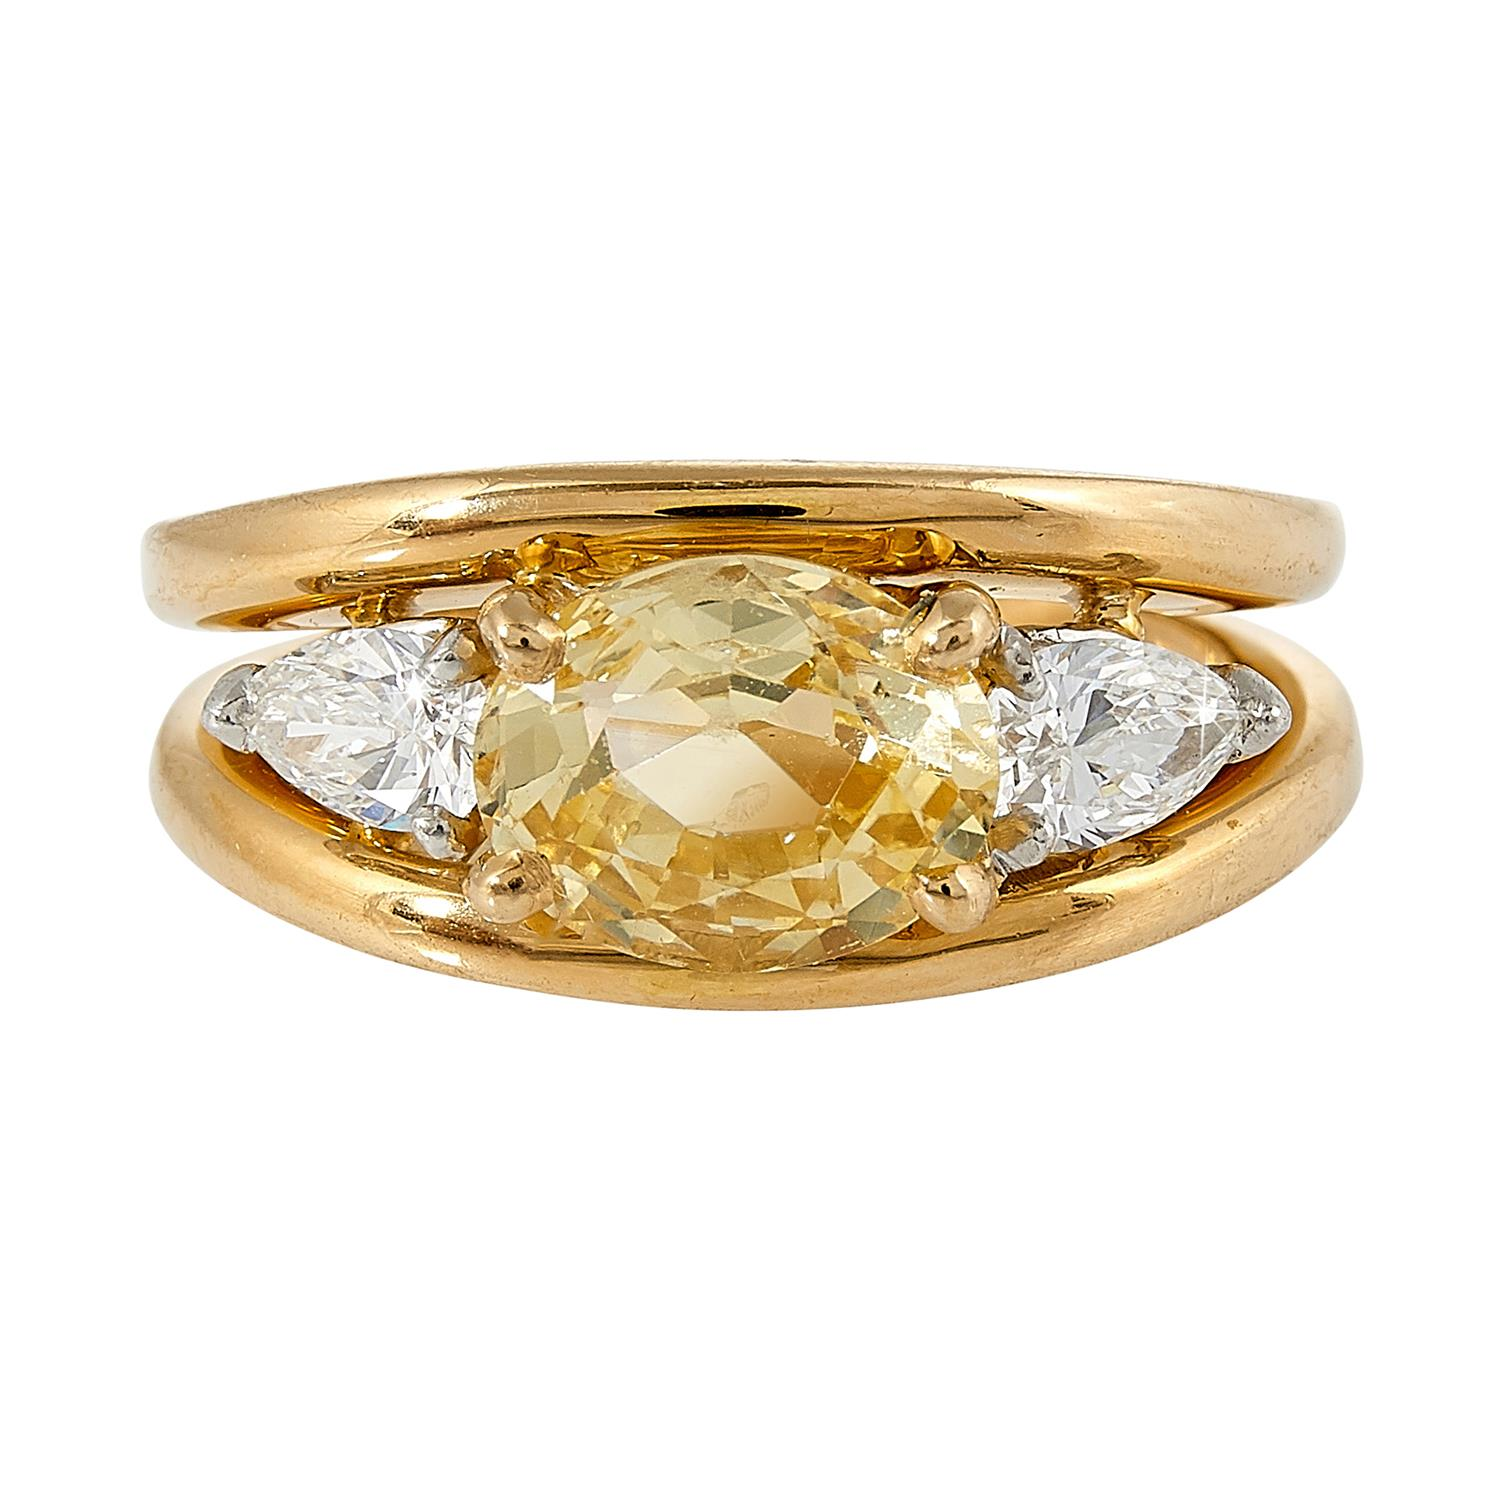 Oscar Heyman Brothers yellow gold, platinum, yellow sapphire and diamond ring size: 5